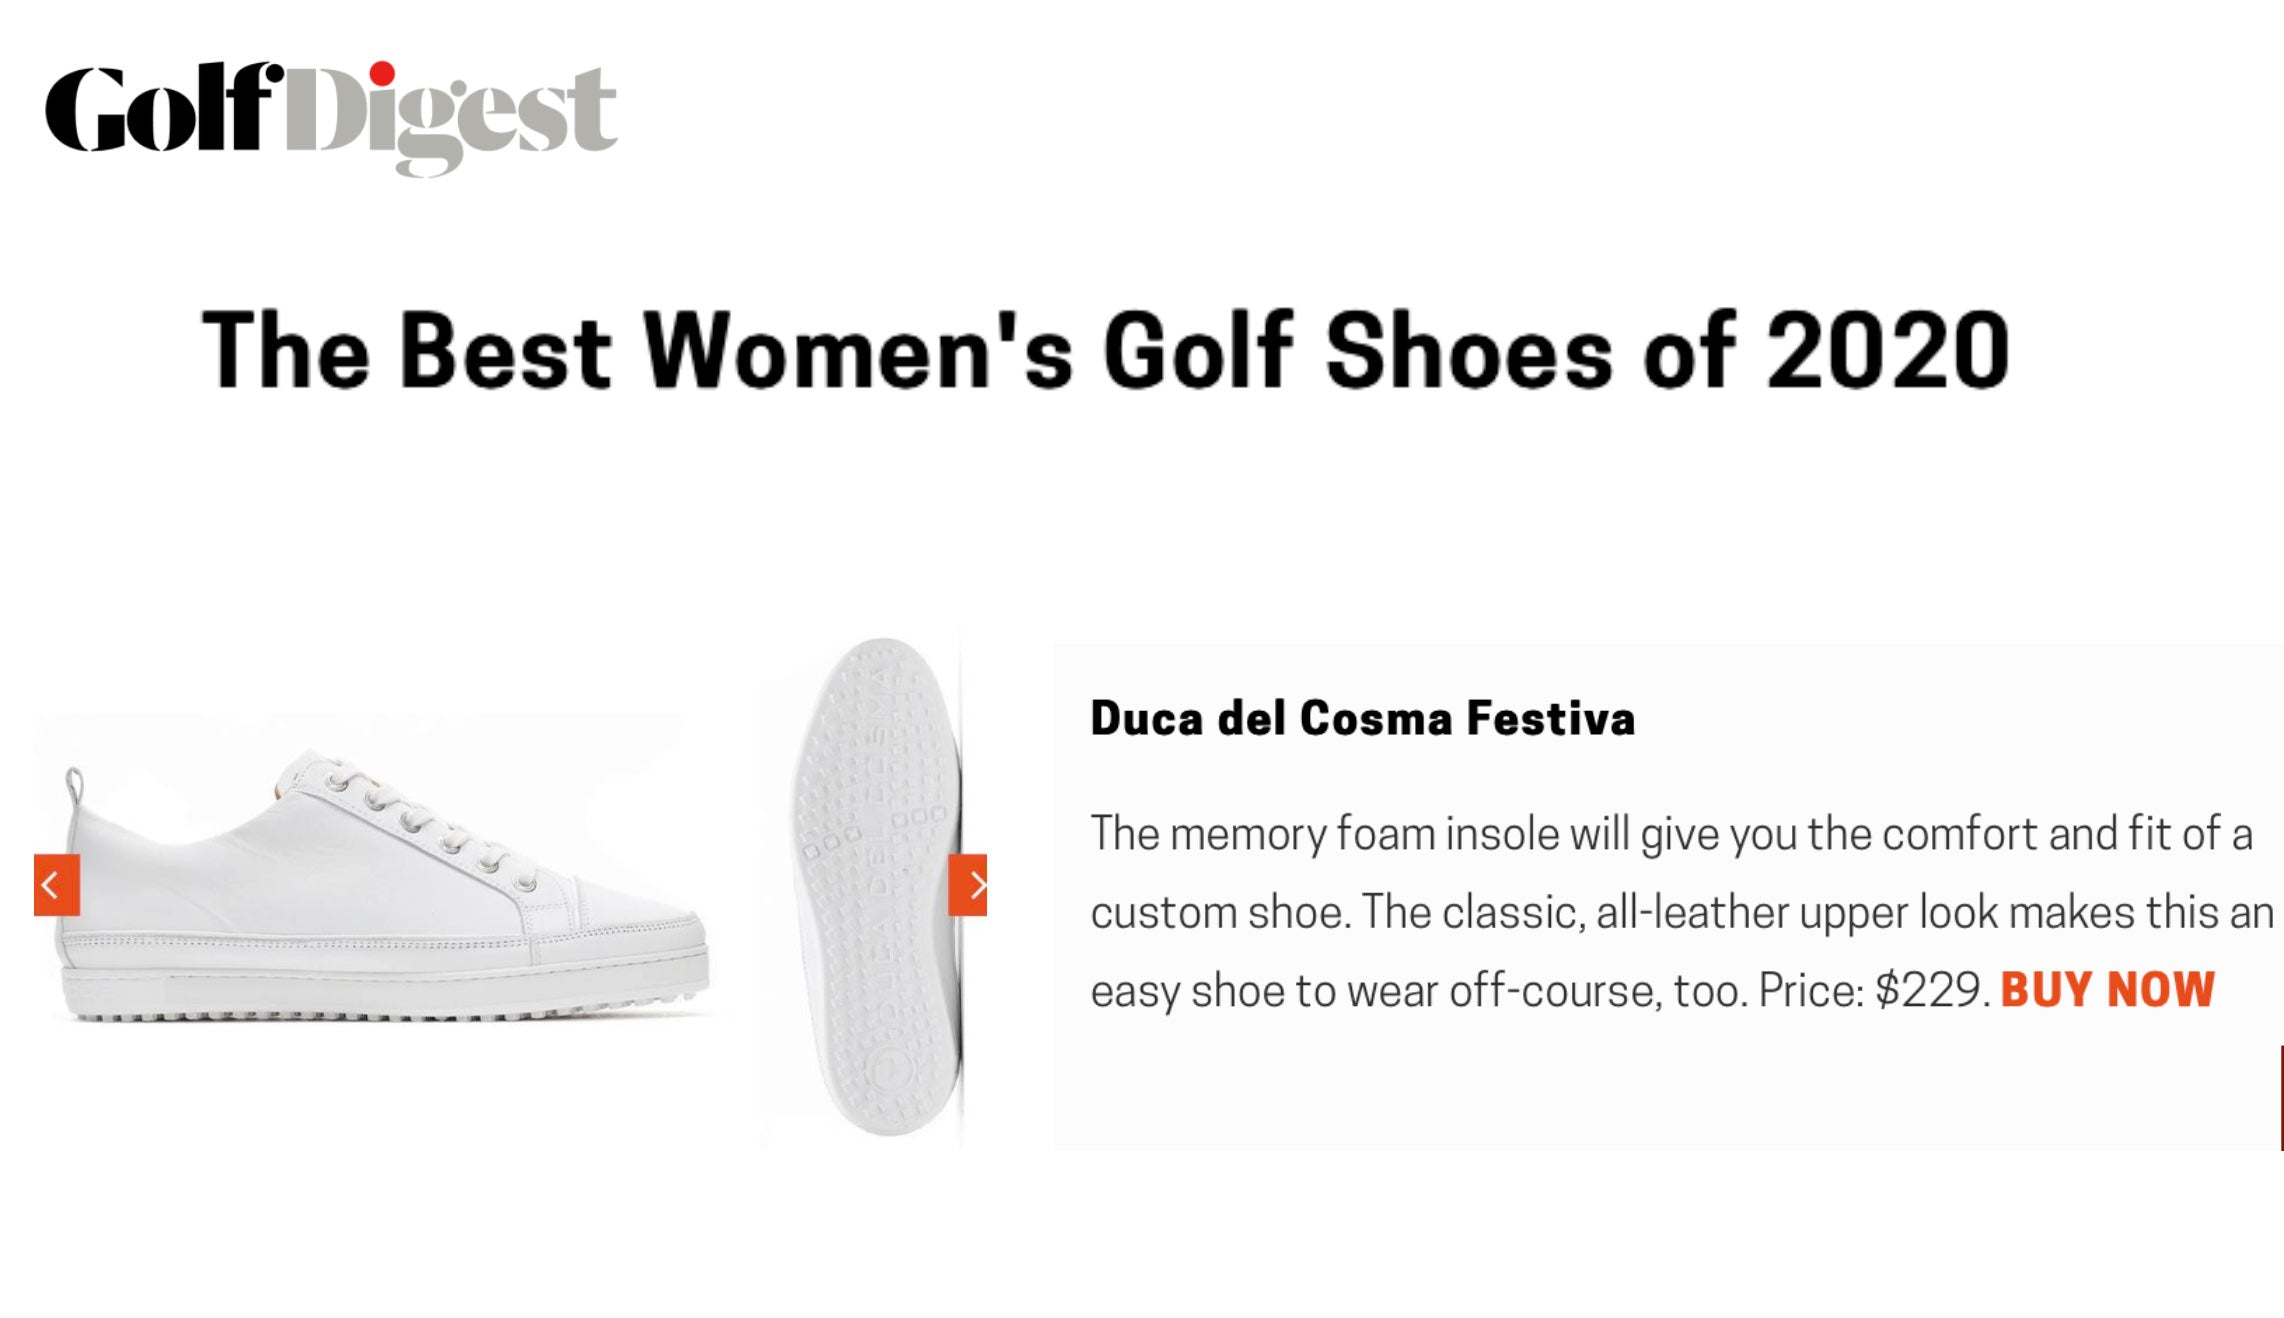 Golf Digest publication featuring the Festiva shoe as one of the Best Womens Golf Shoes of 2020